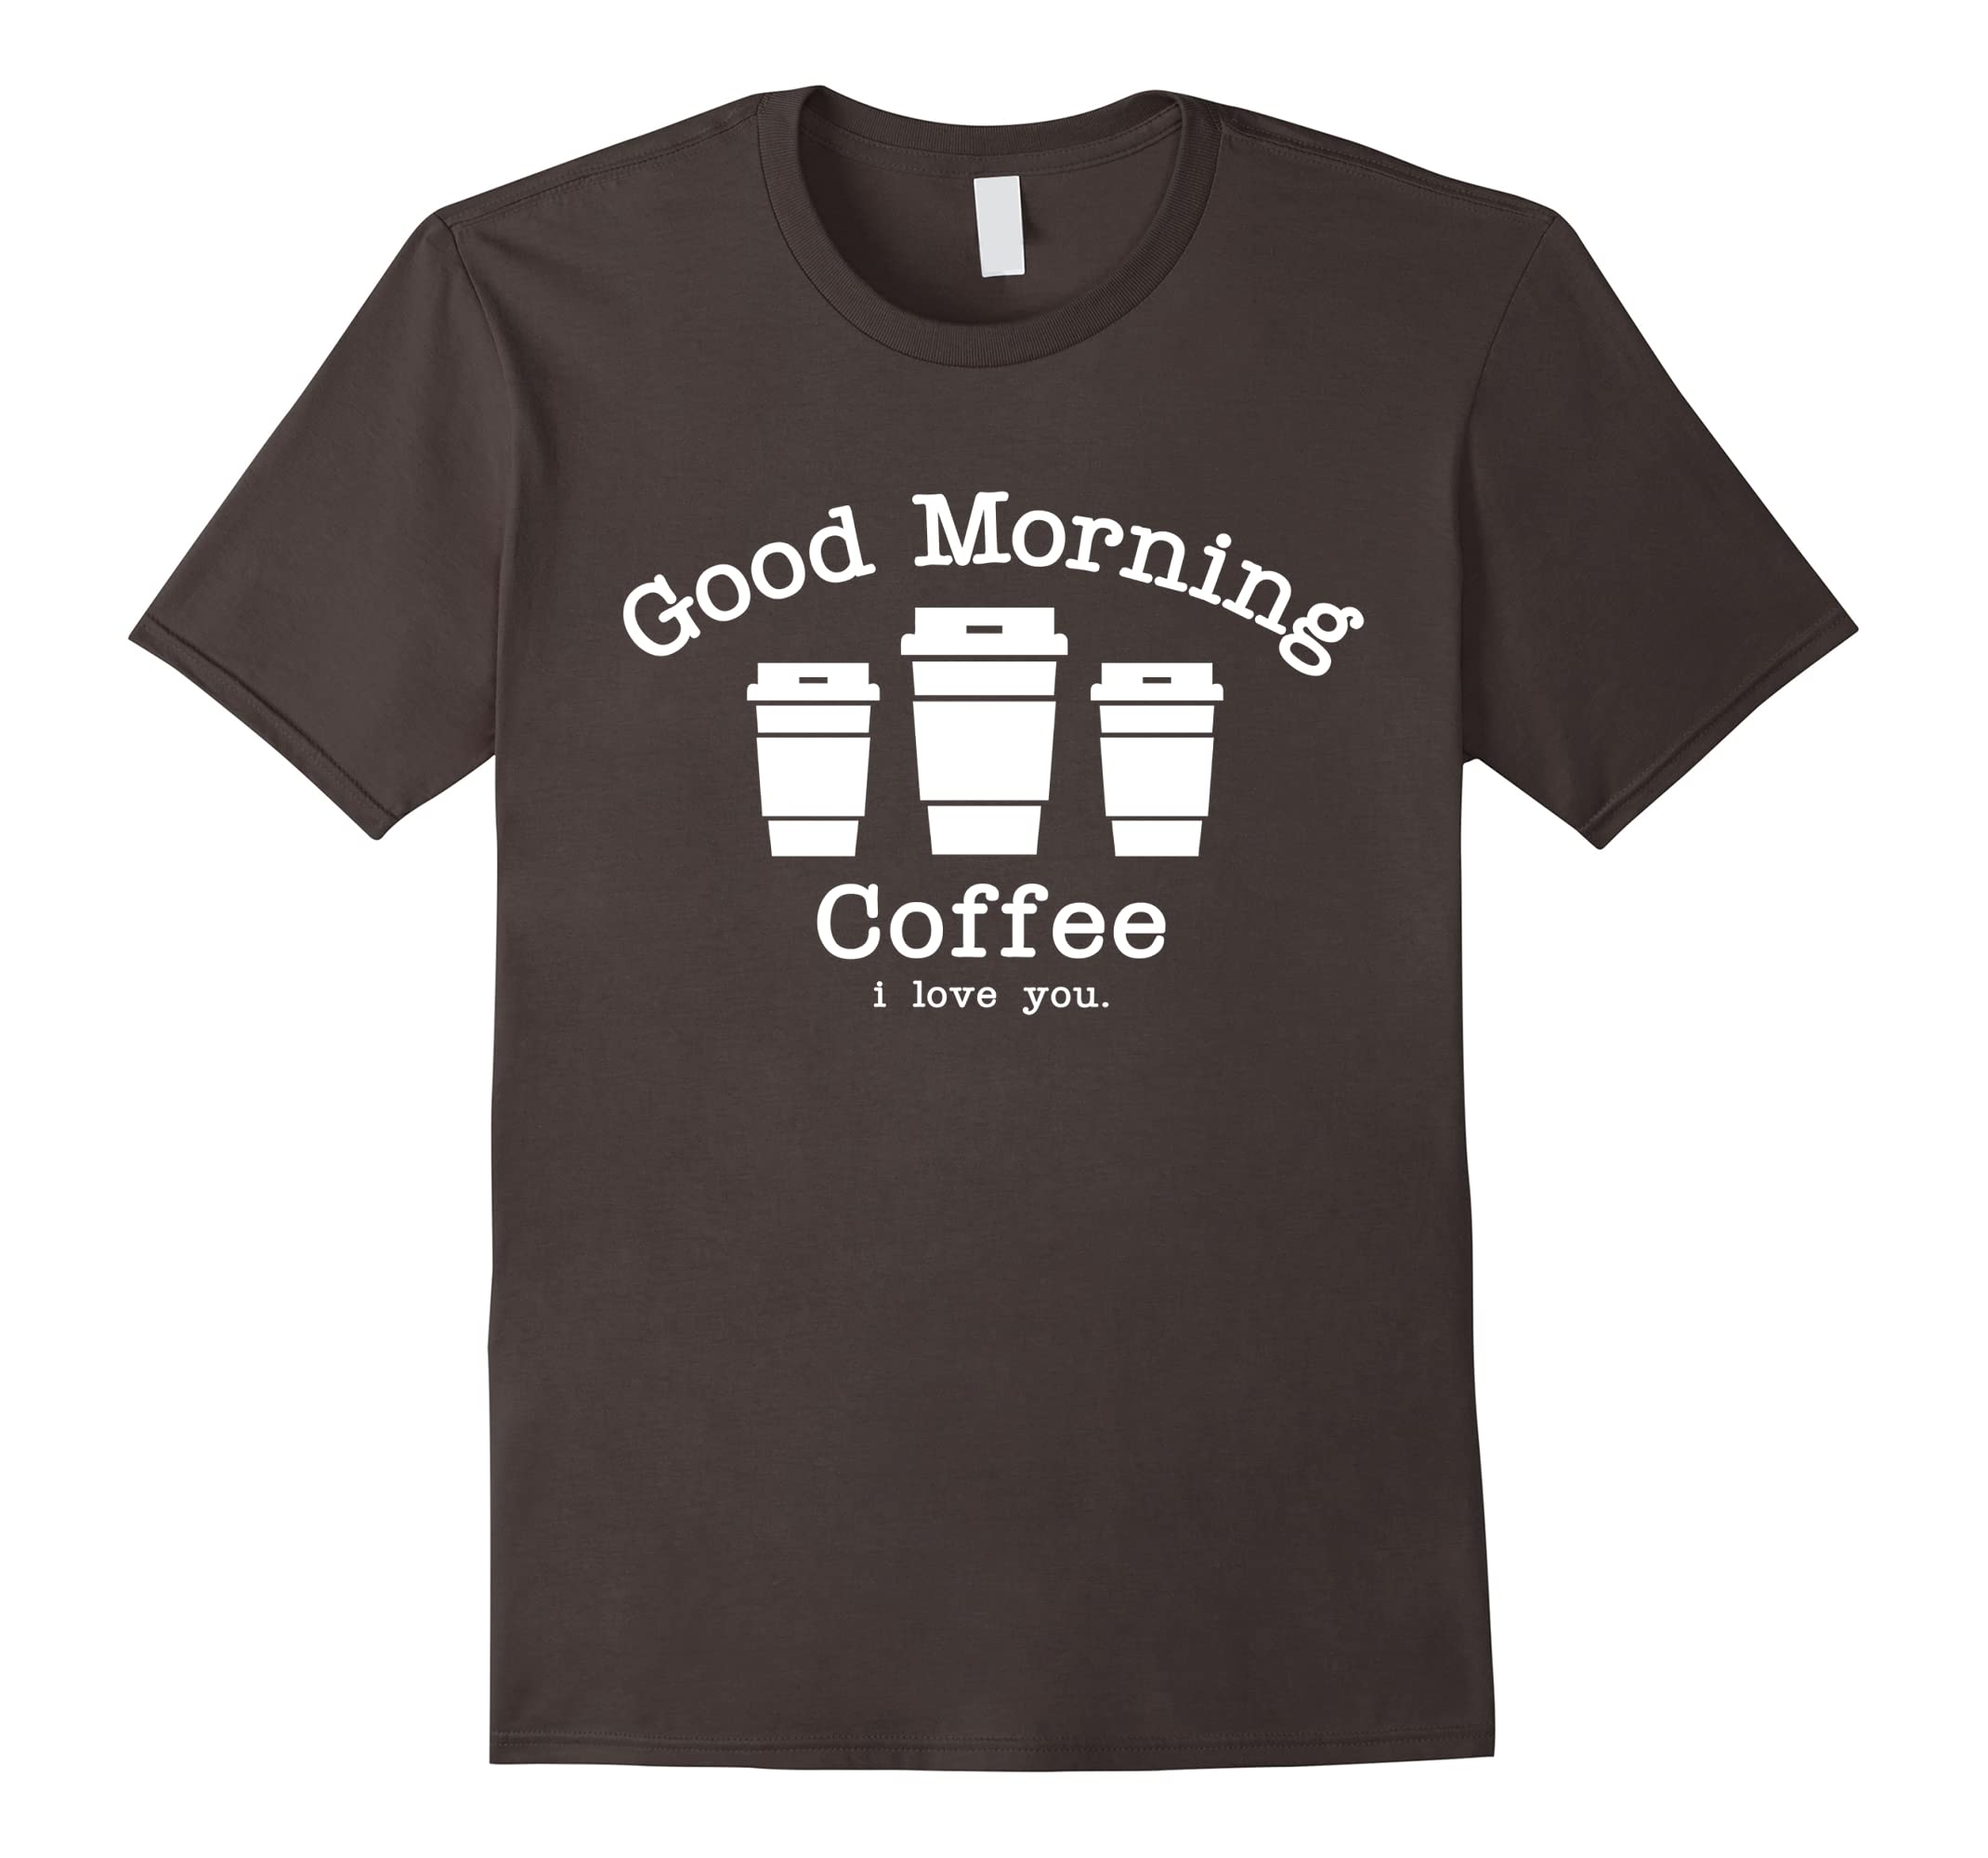 black coffee drinker lover tshirt good morning coffee ah my shirt one gift